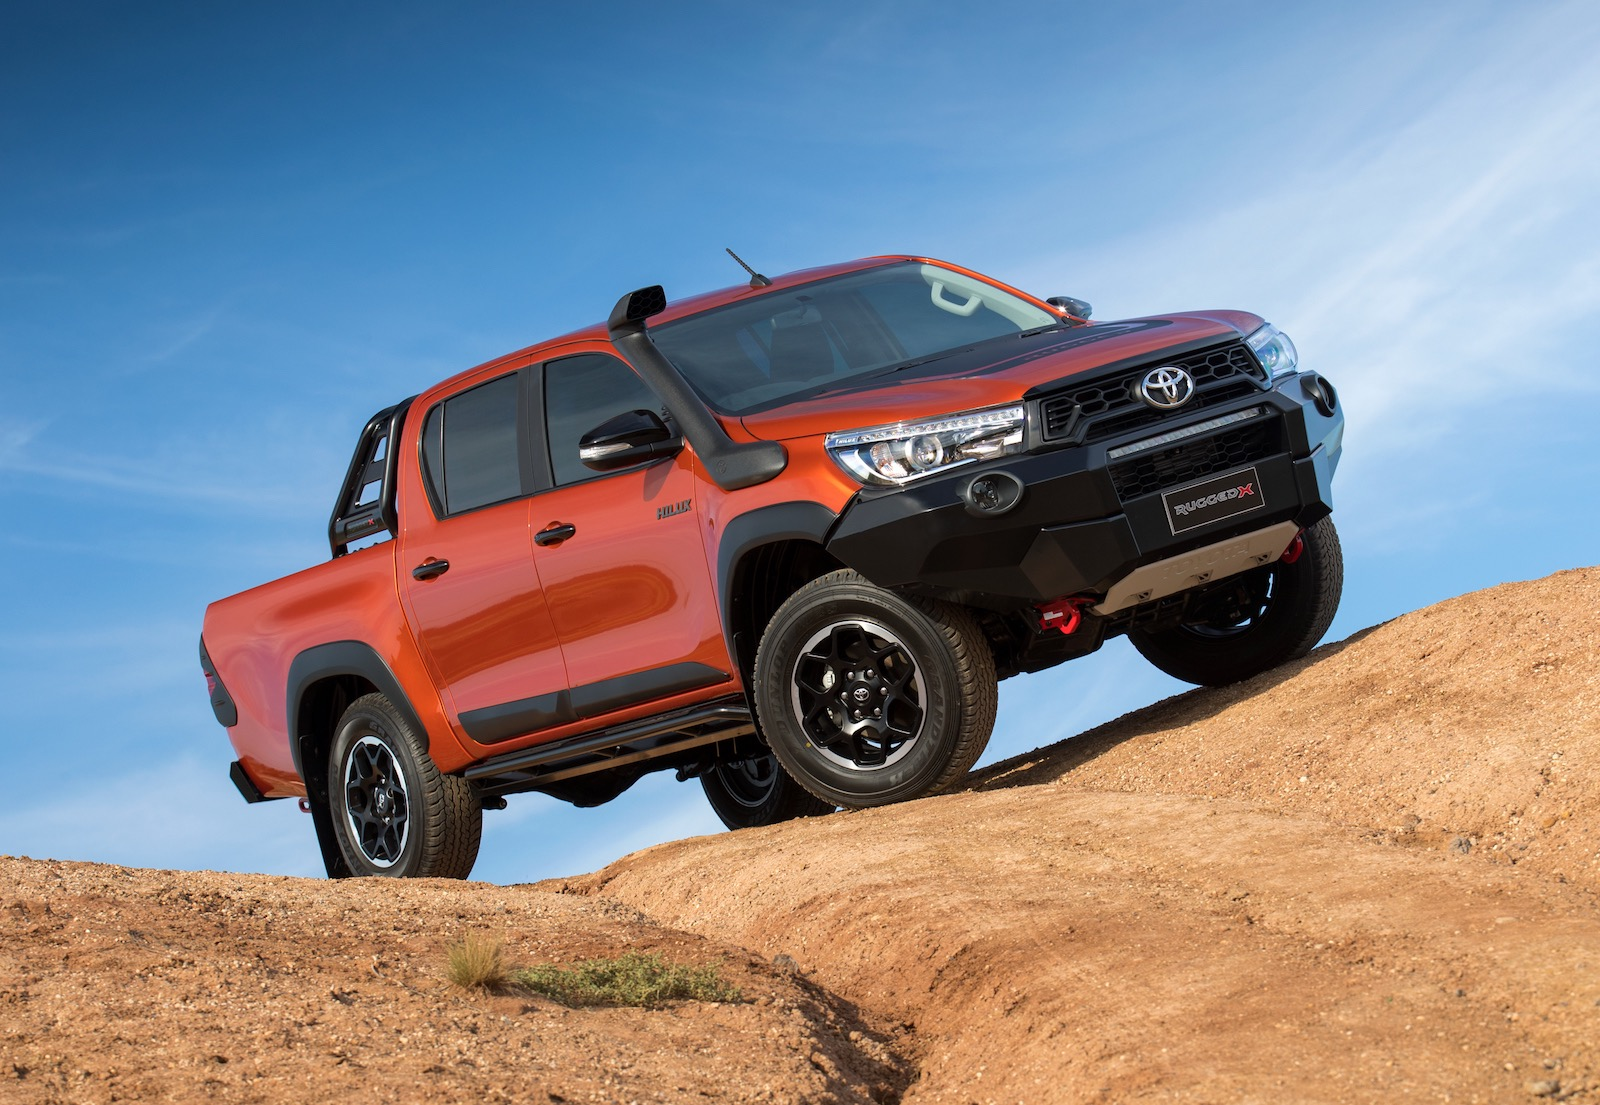 Toyota Hilux Rugged Amp Rogue Variants Confirmed For